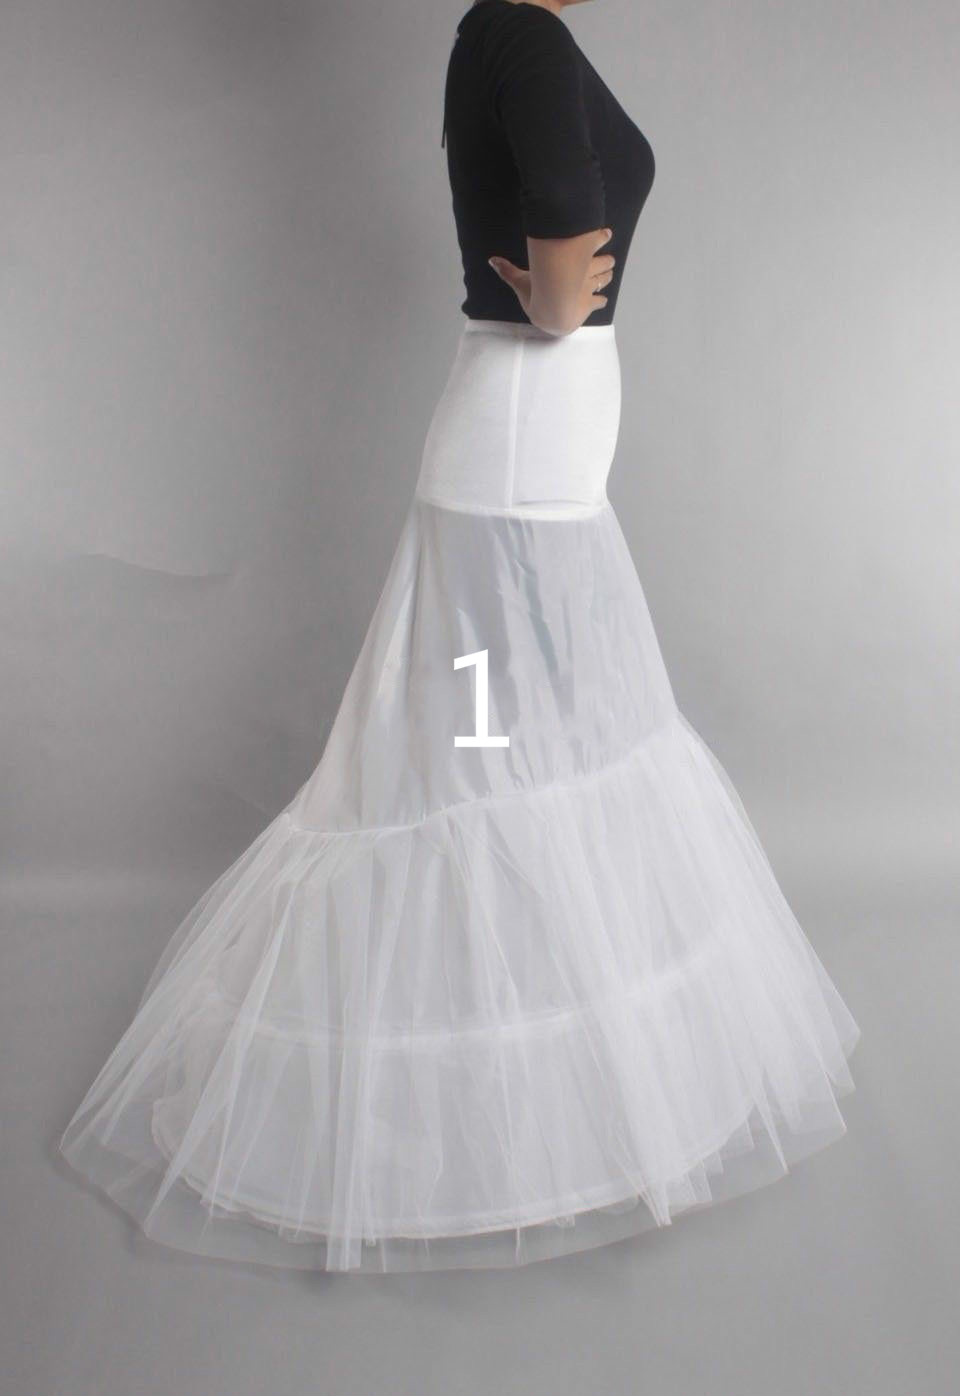 Hot Sell Many Styles Bridal Wedding Petticoat Hoop Crinoline Prom Underskirt Fancy Skirt Slip